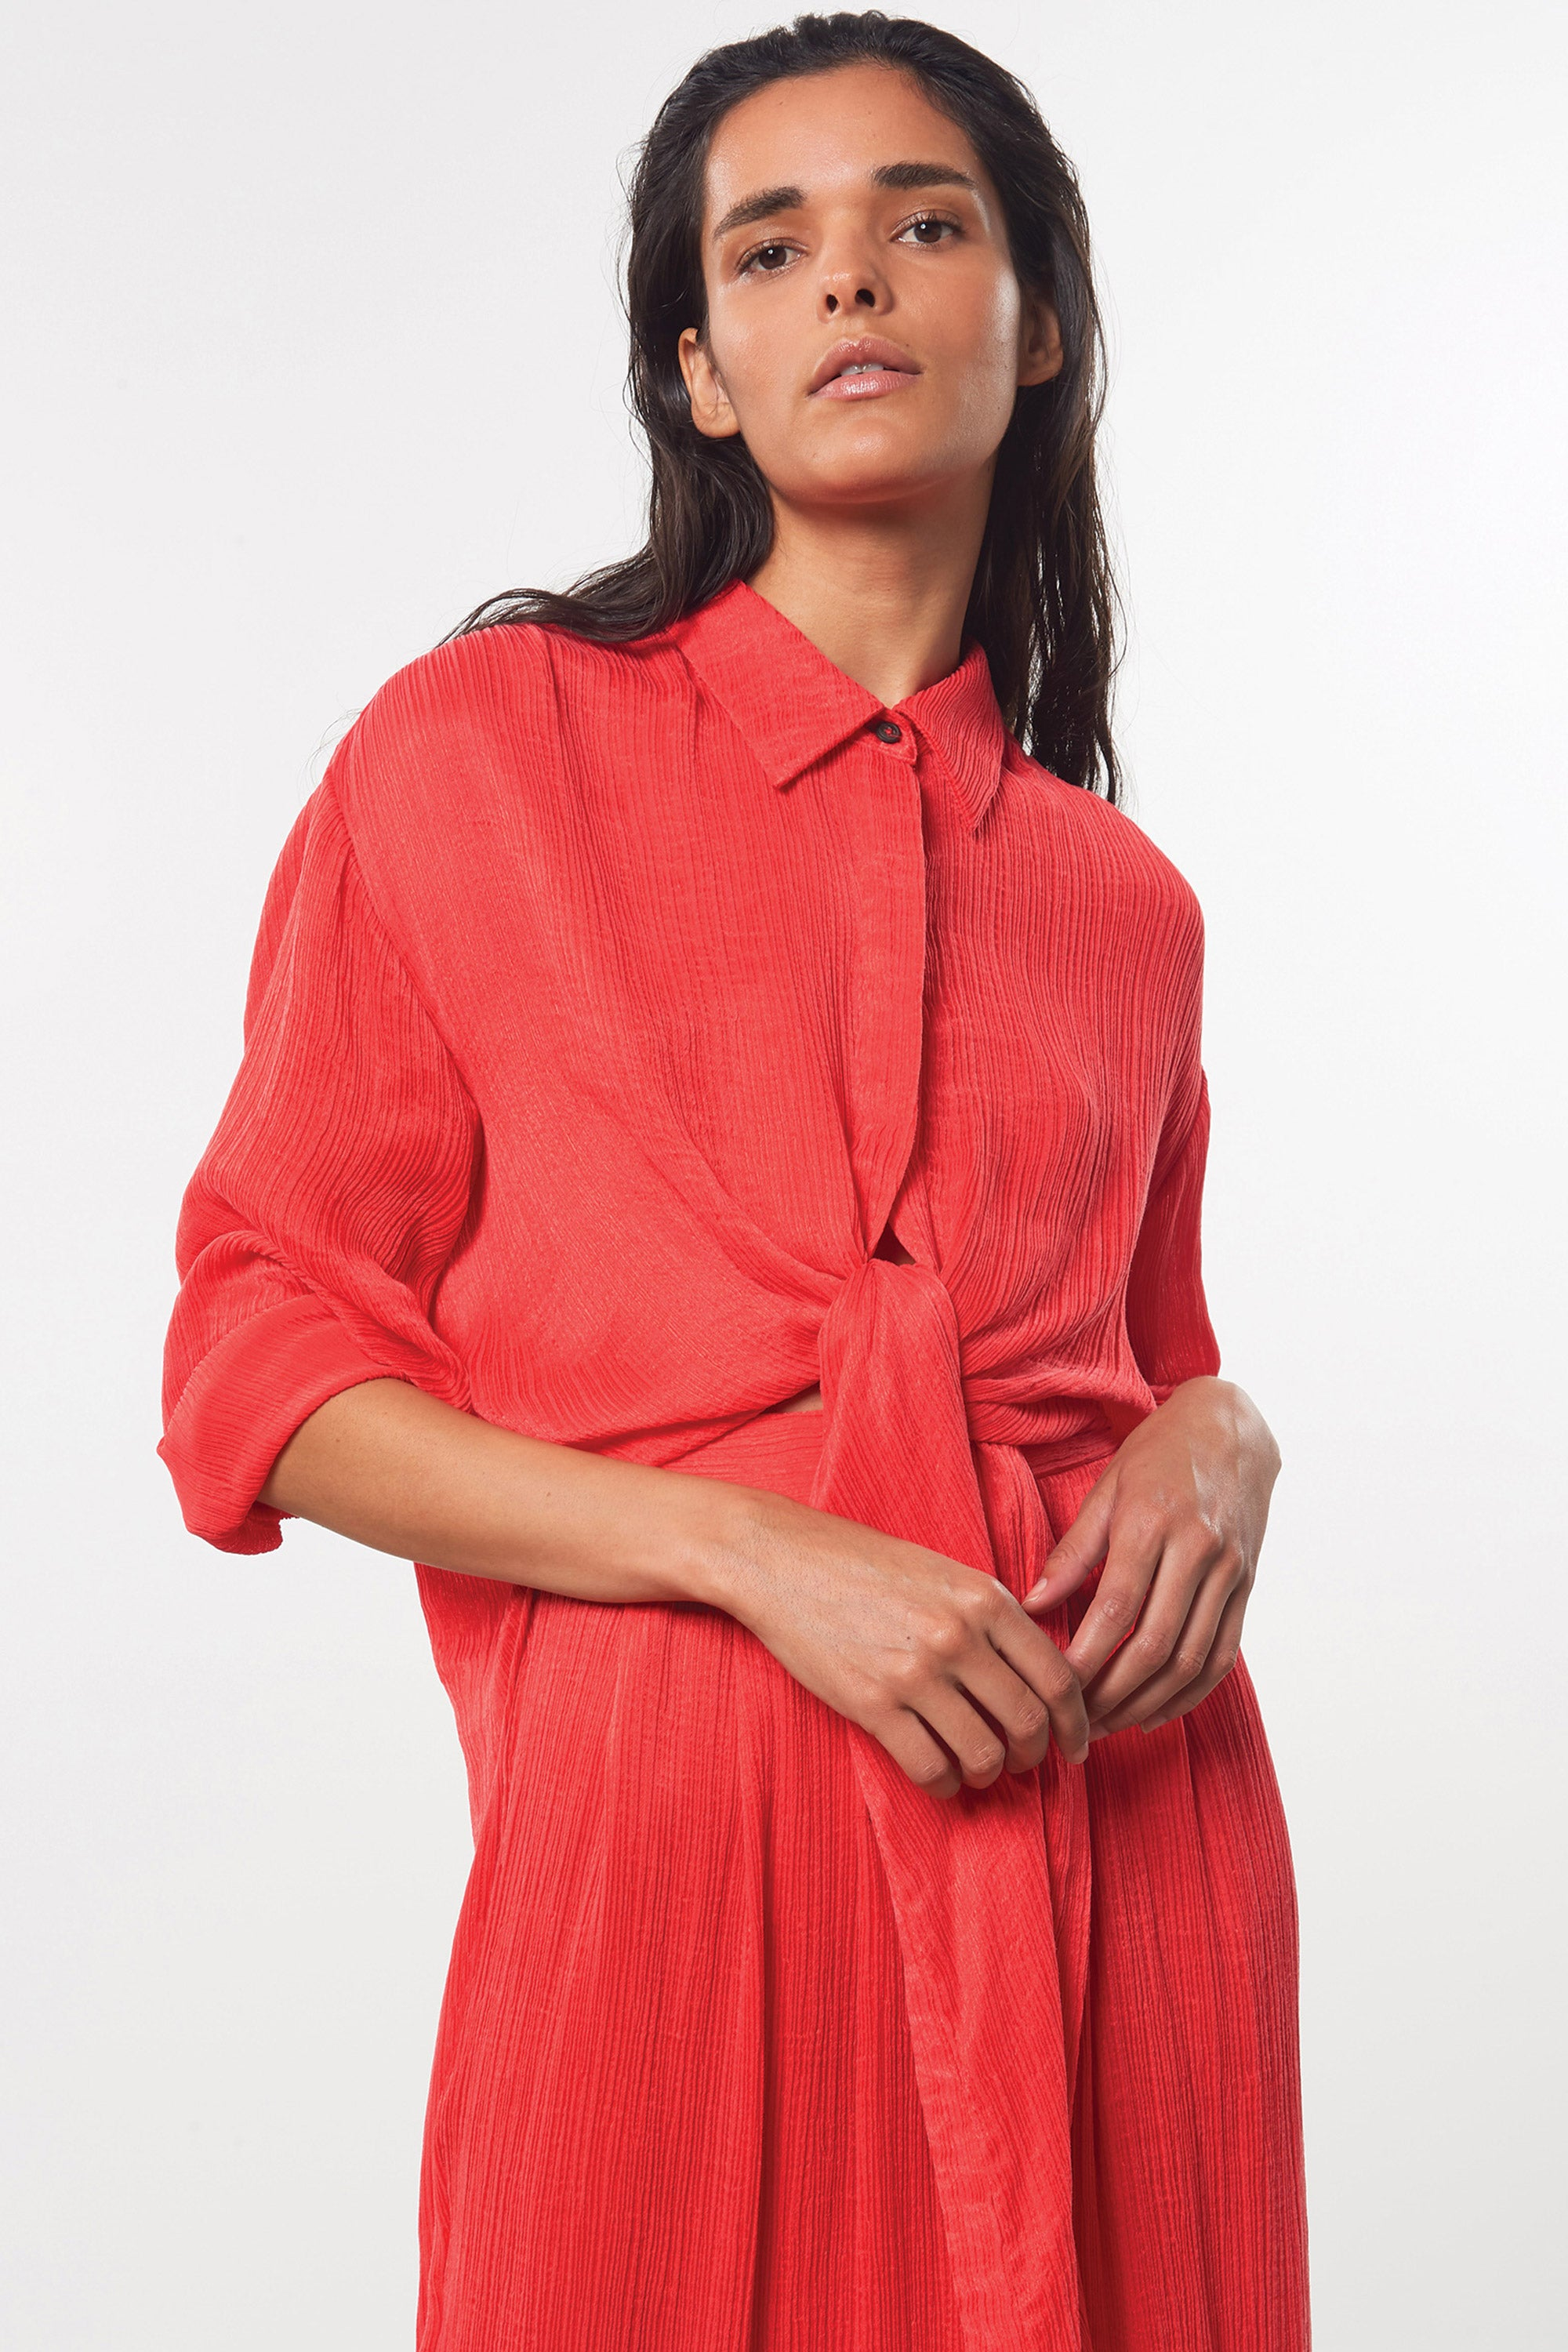 Mara Hoffman Red Agata Dress in Tencel Lyocell (tie detail)